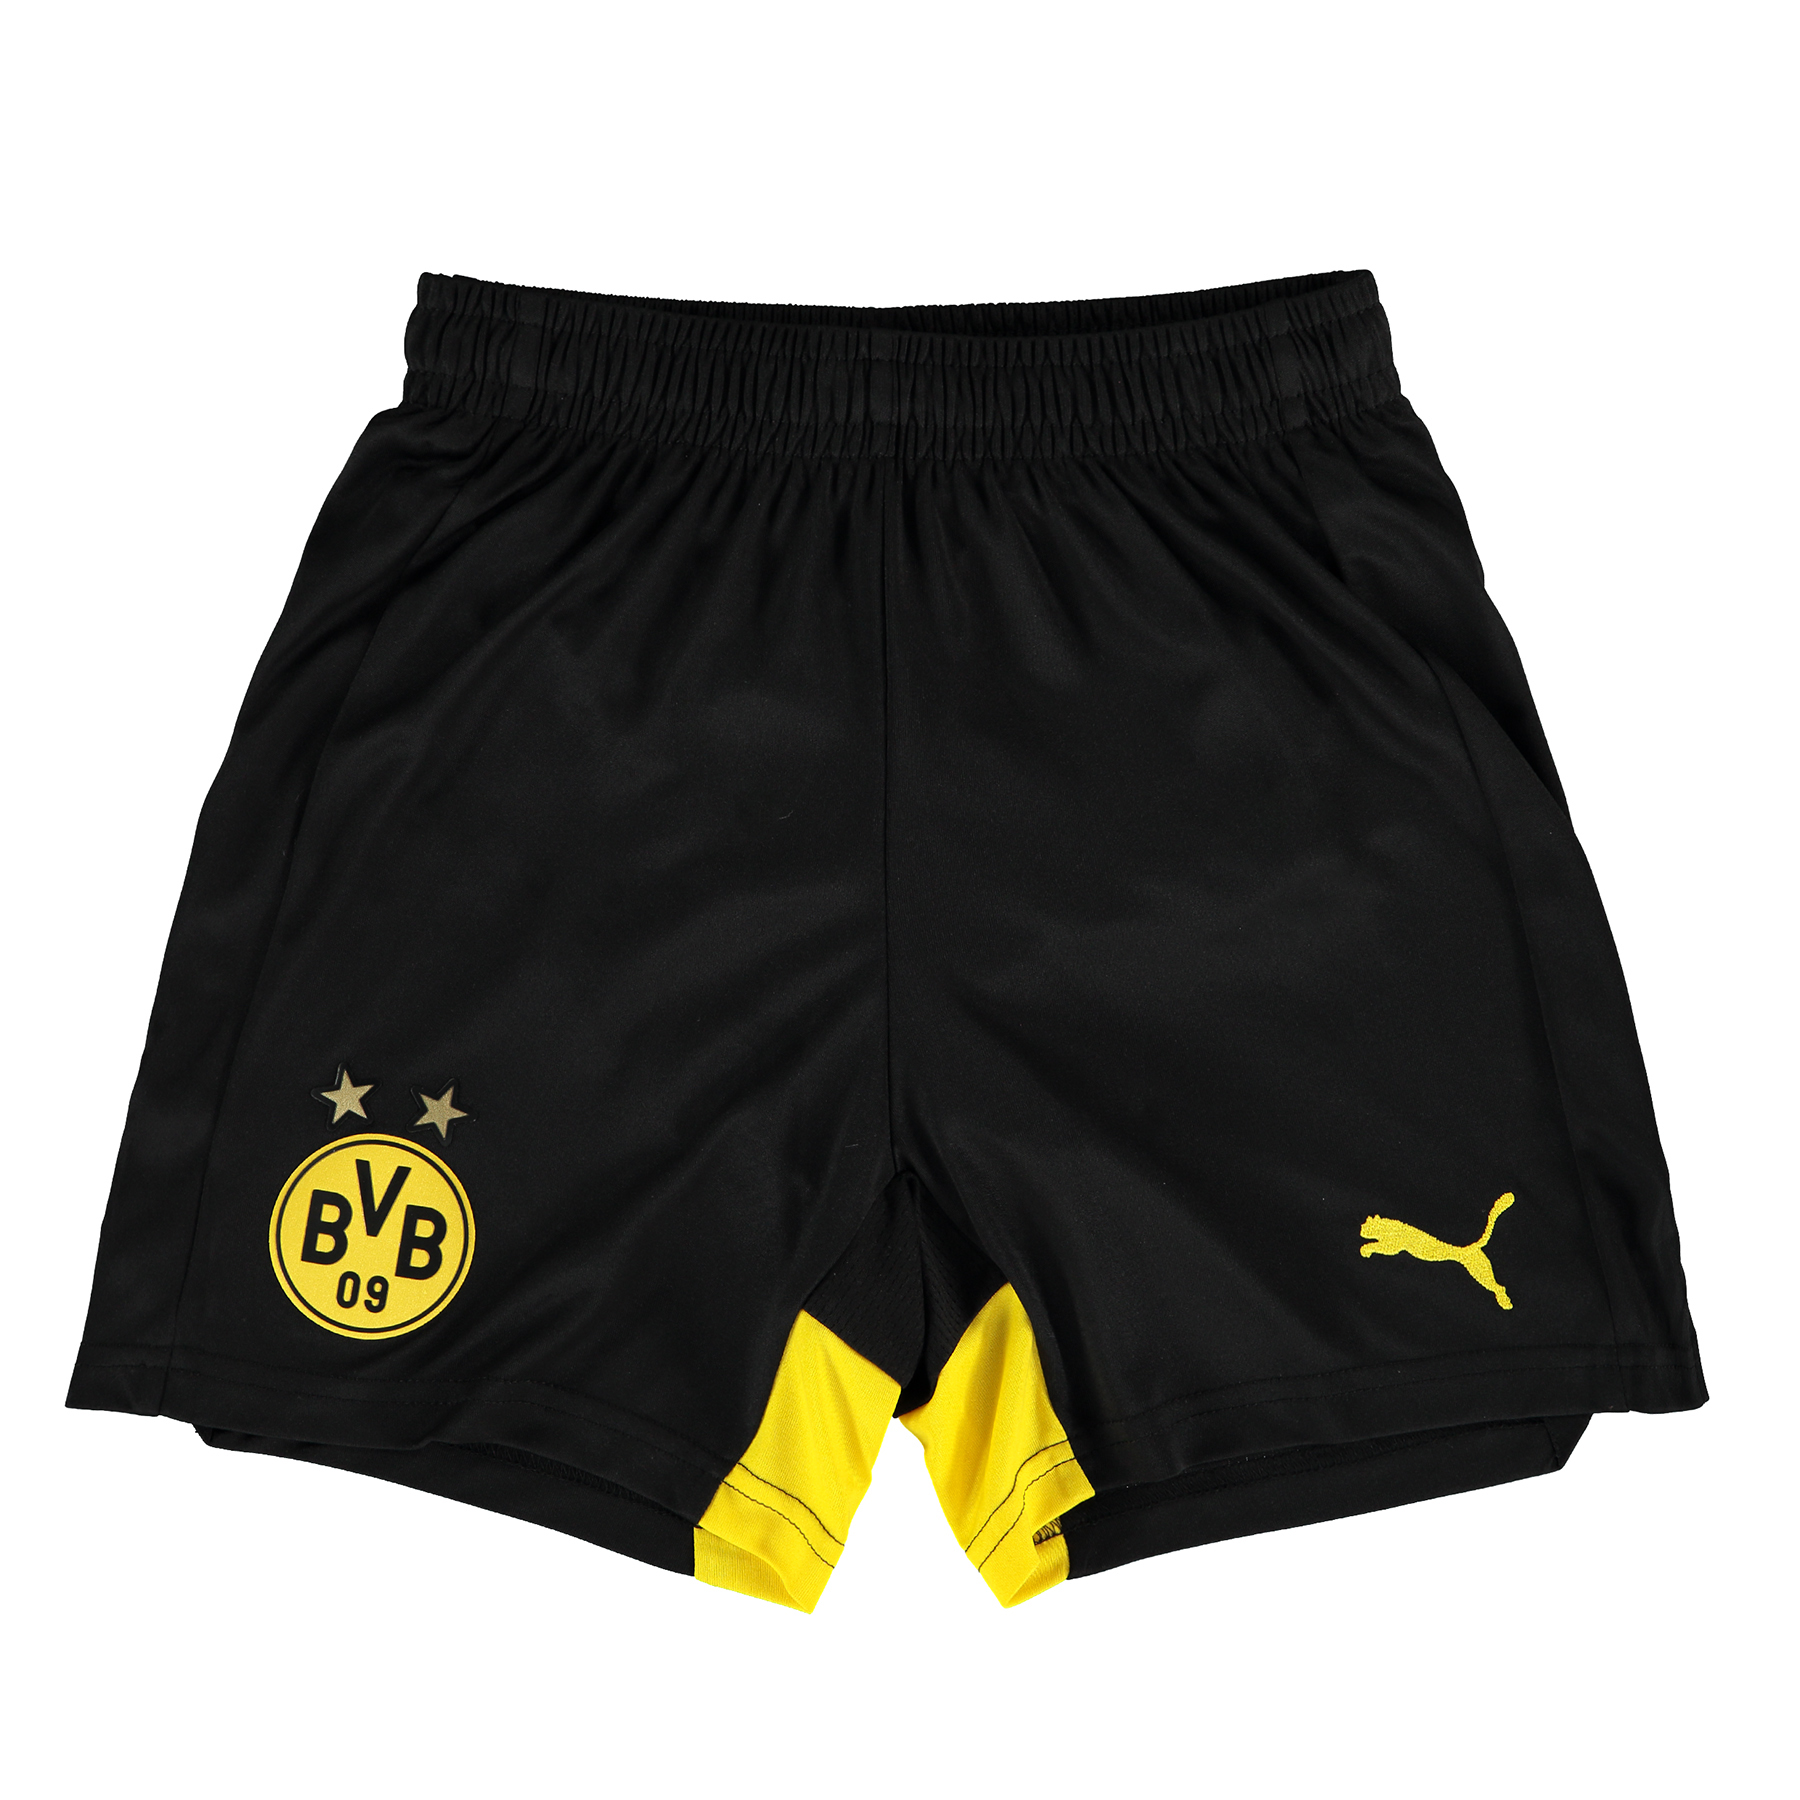 BVB Home/Away Shorts 2015/16 - Kids Black